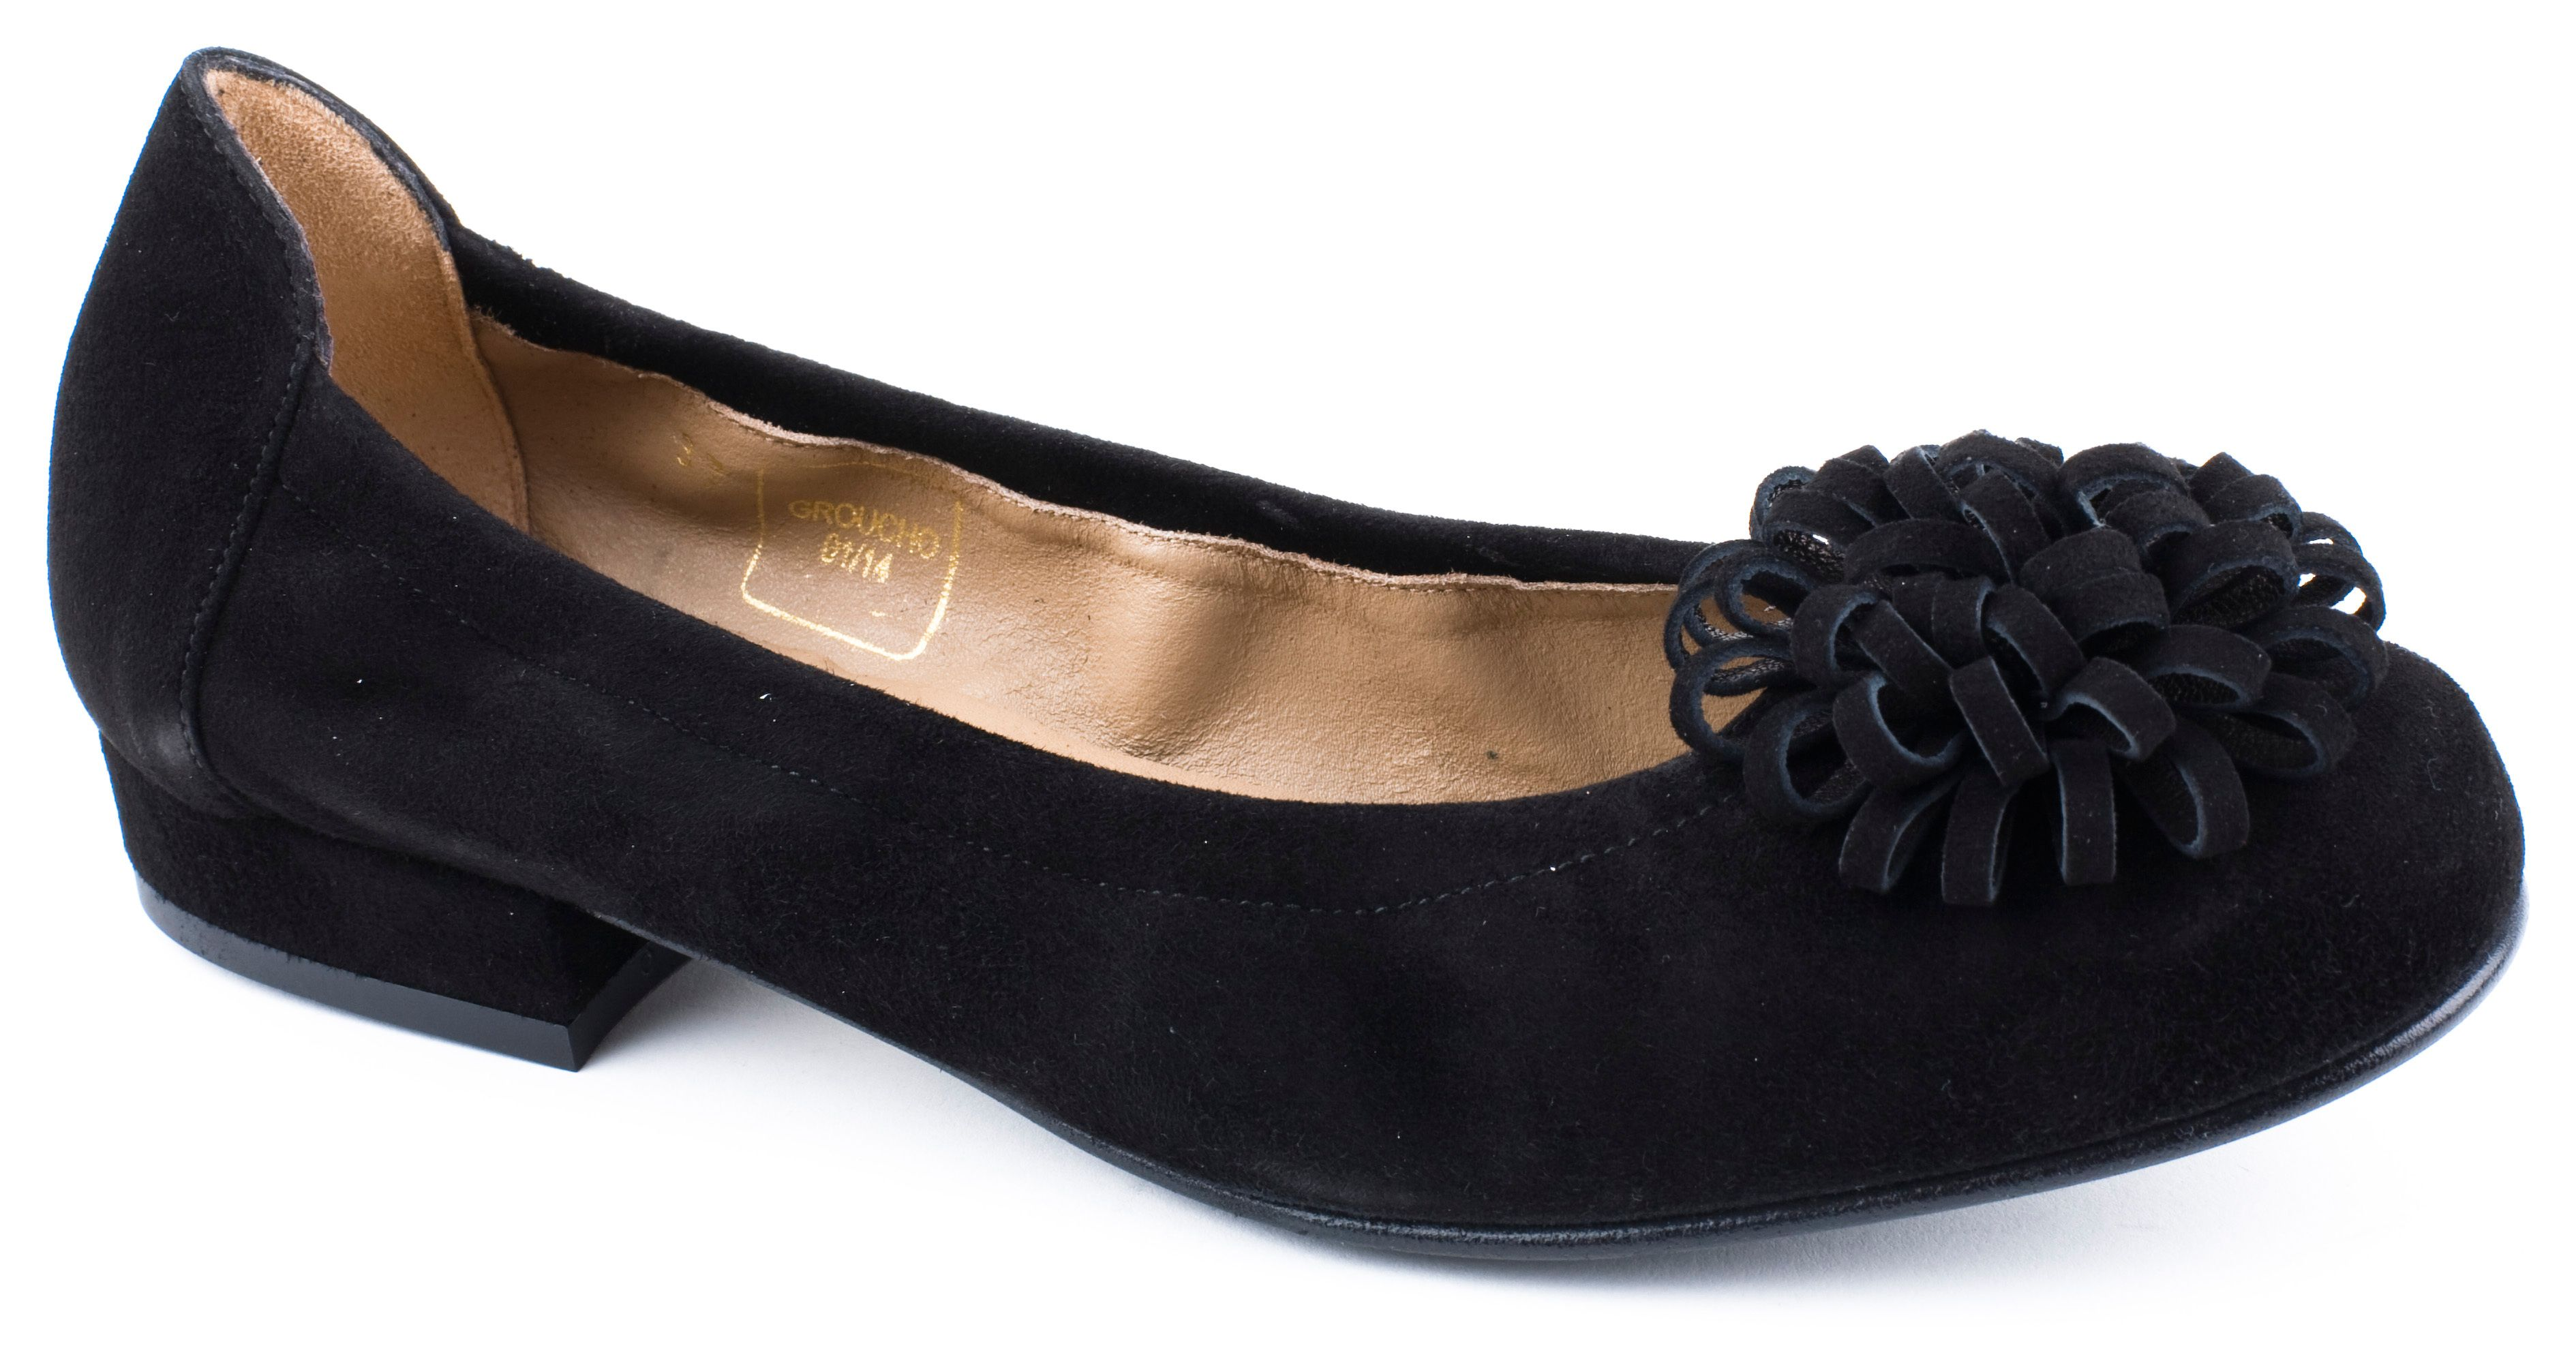 Groucho ballerina pumps